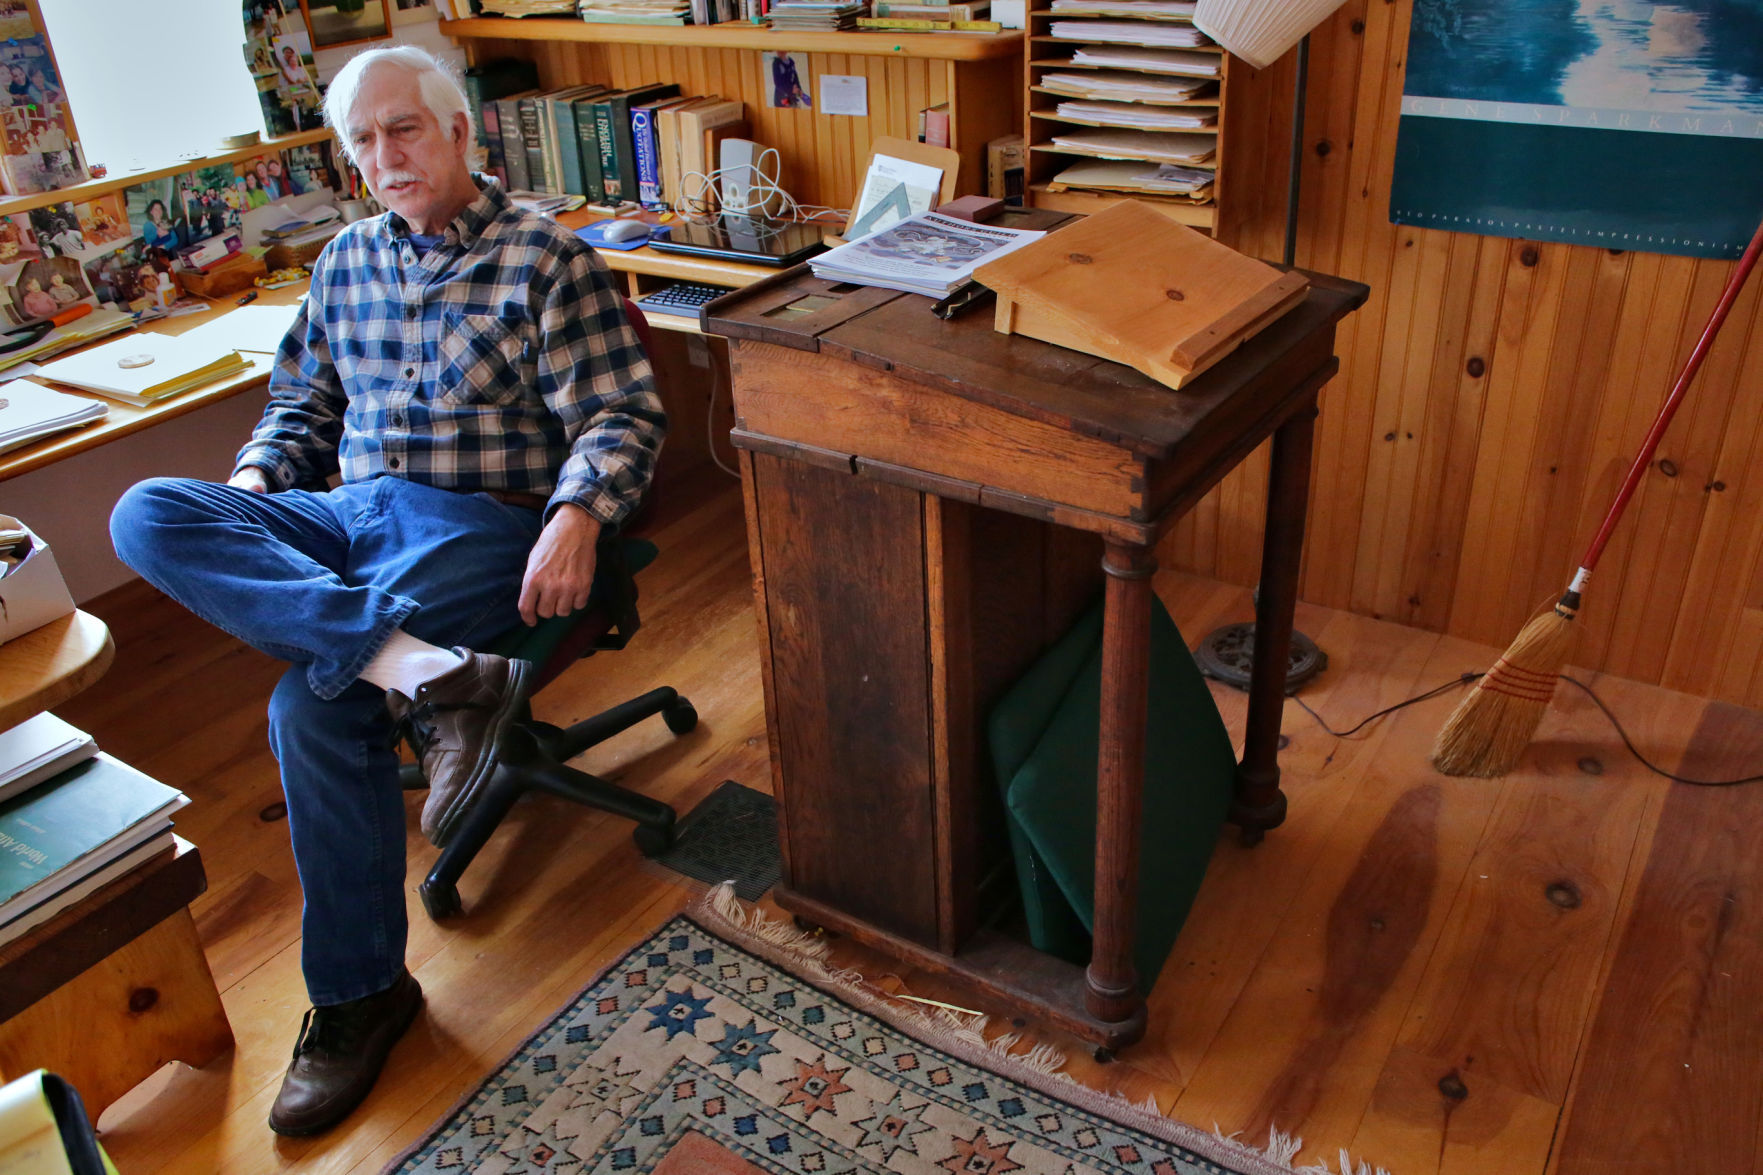 hancock novelist never at a loss for words local news rh sentinelsource com